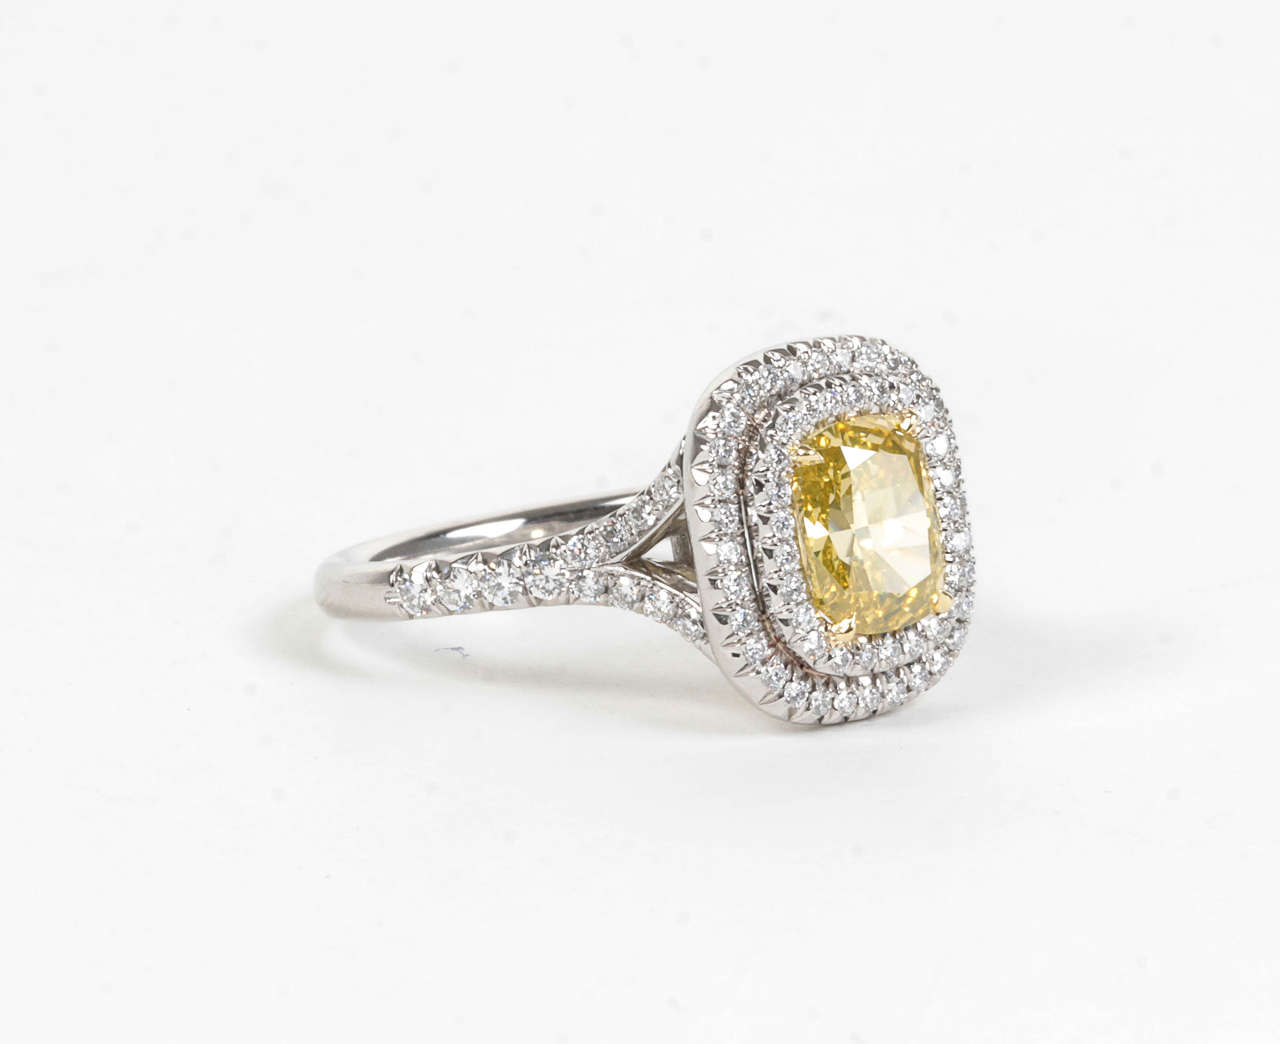 Women's Rare Cushion Cut GIA Certified Vivid Yellow and White Diamond Platinum Ring For Sale